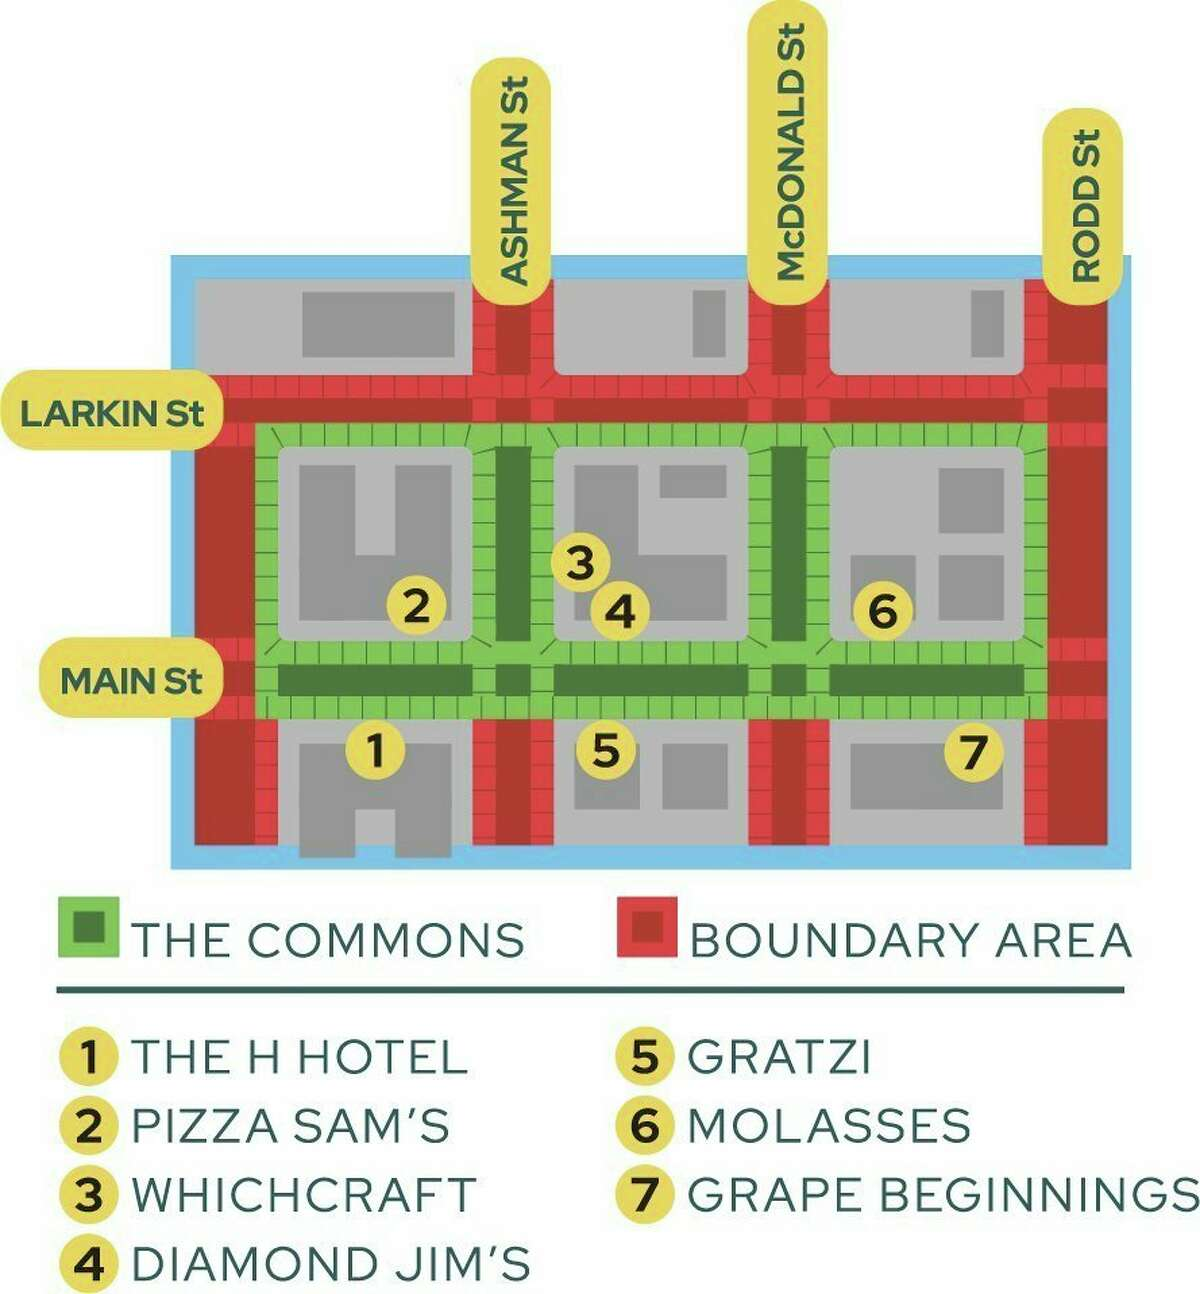 Downtown Midland's Commons area boundaries extend from Gordon Street to Rodd Street and Main Street to Larkin Street. (Image provided)